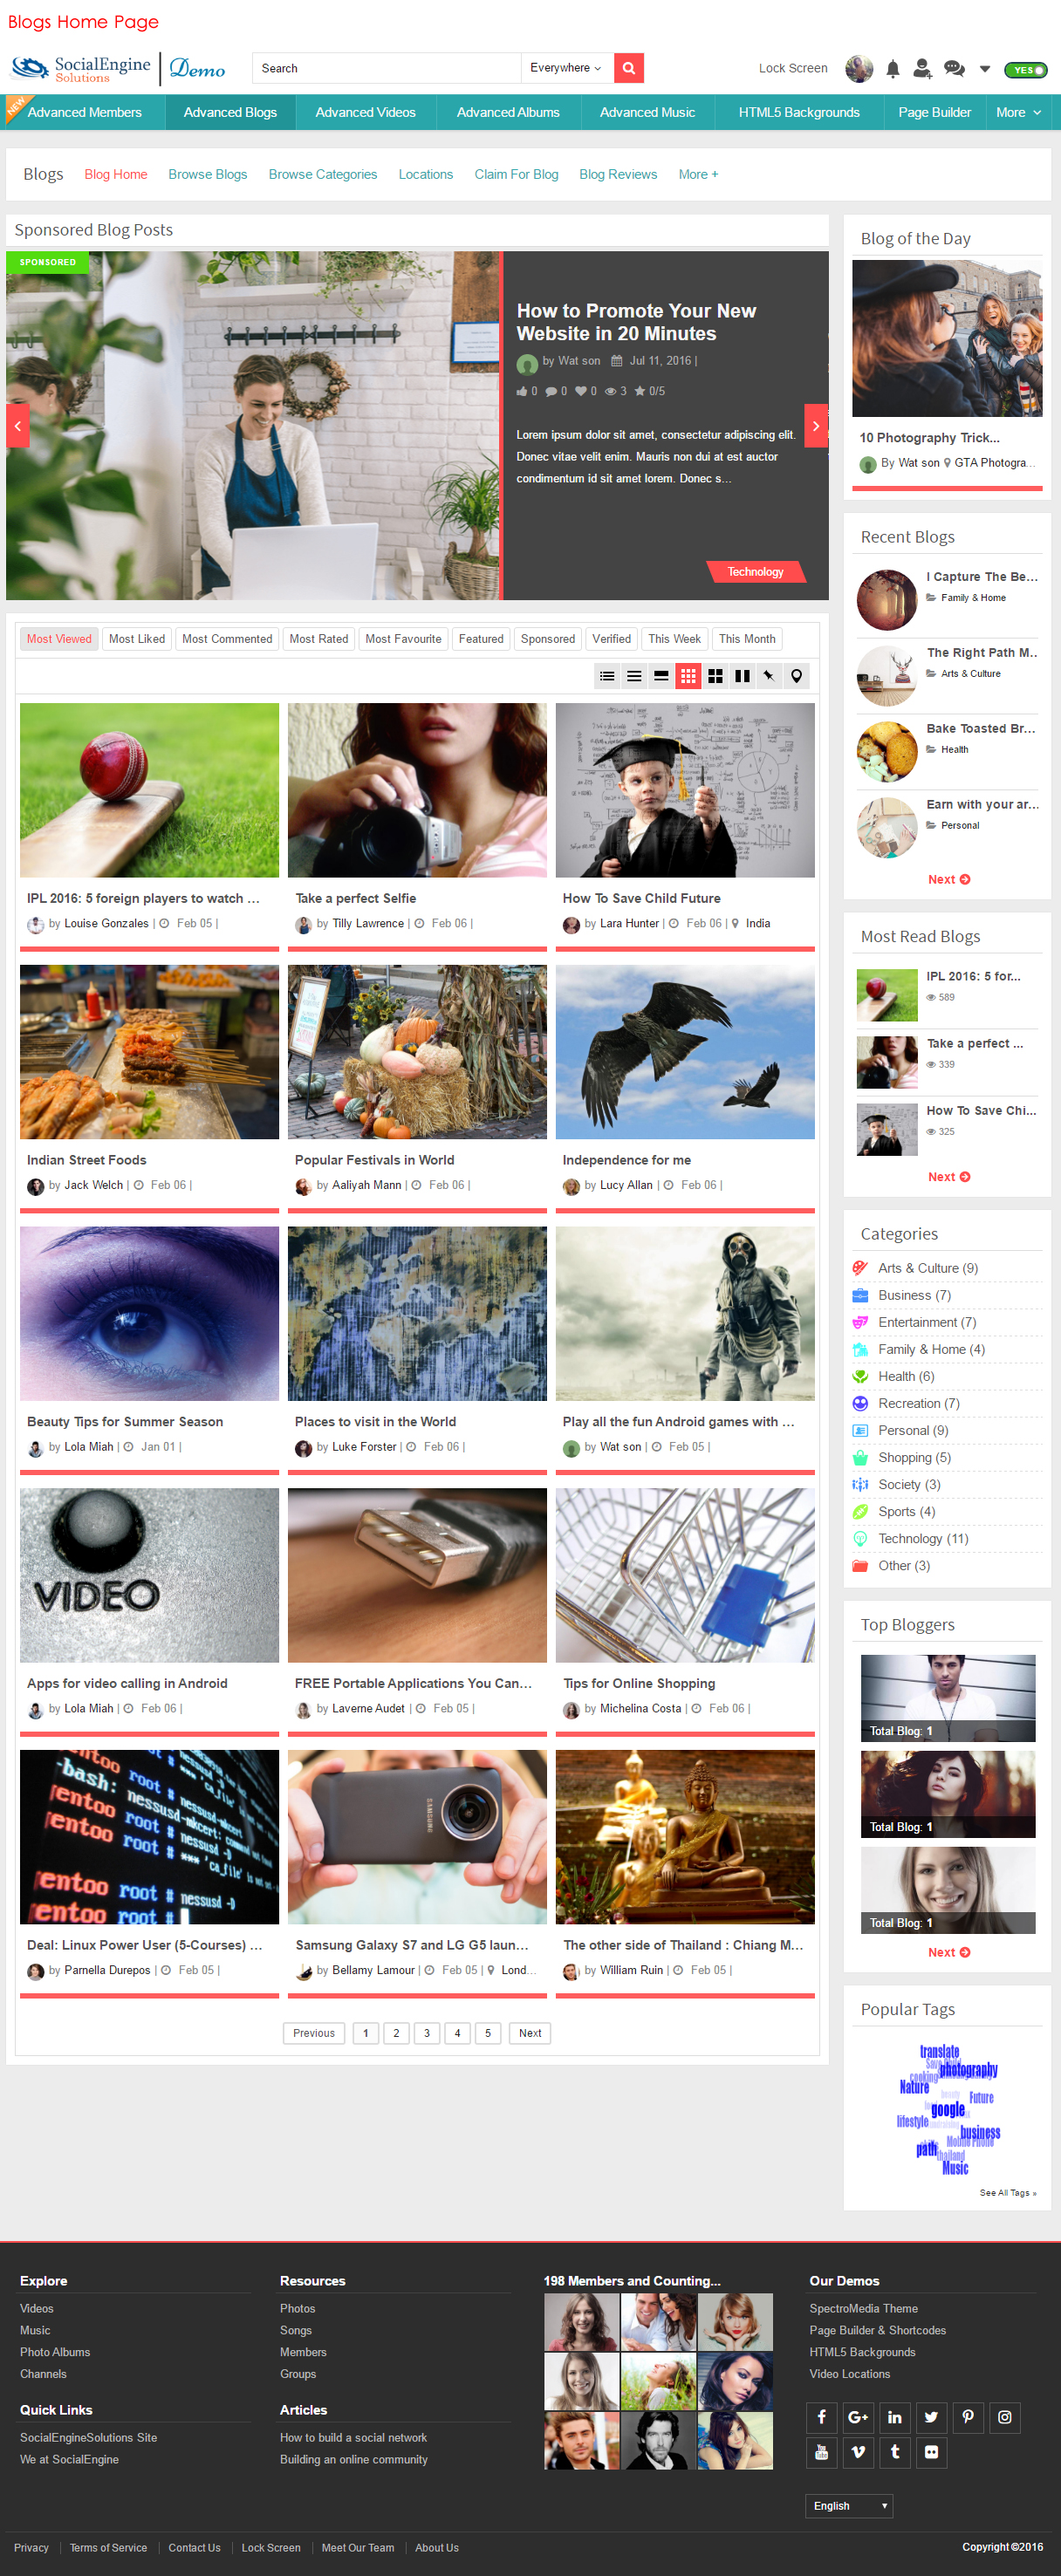 Blogs Home Page